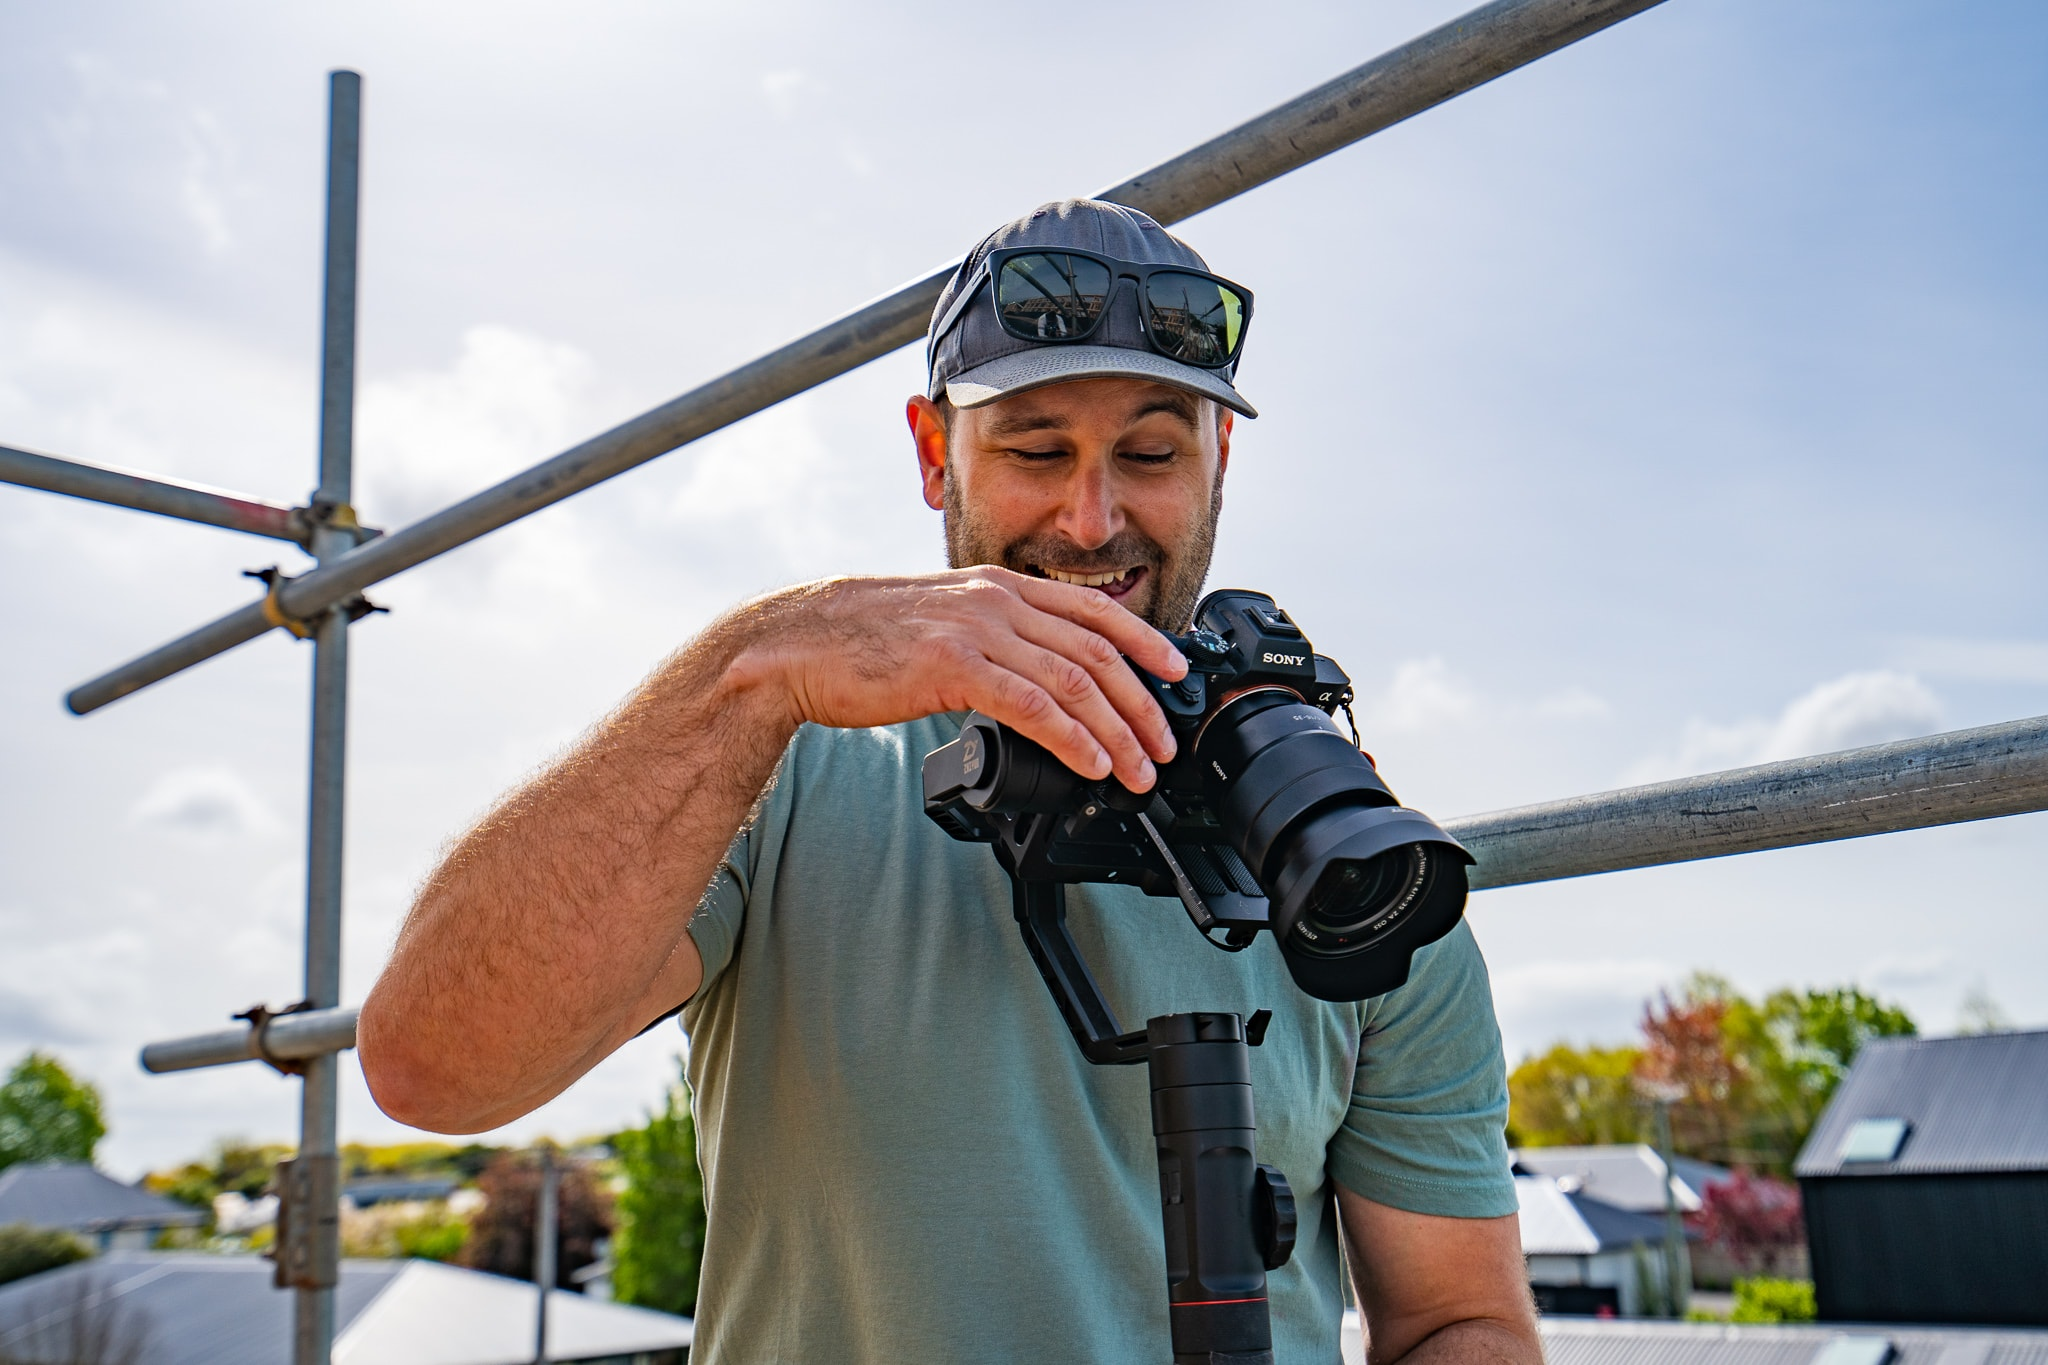 Get high quality photos of your business from the team at MoMac